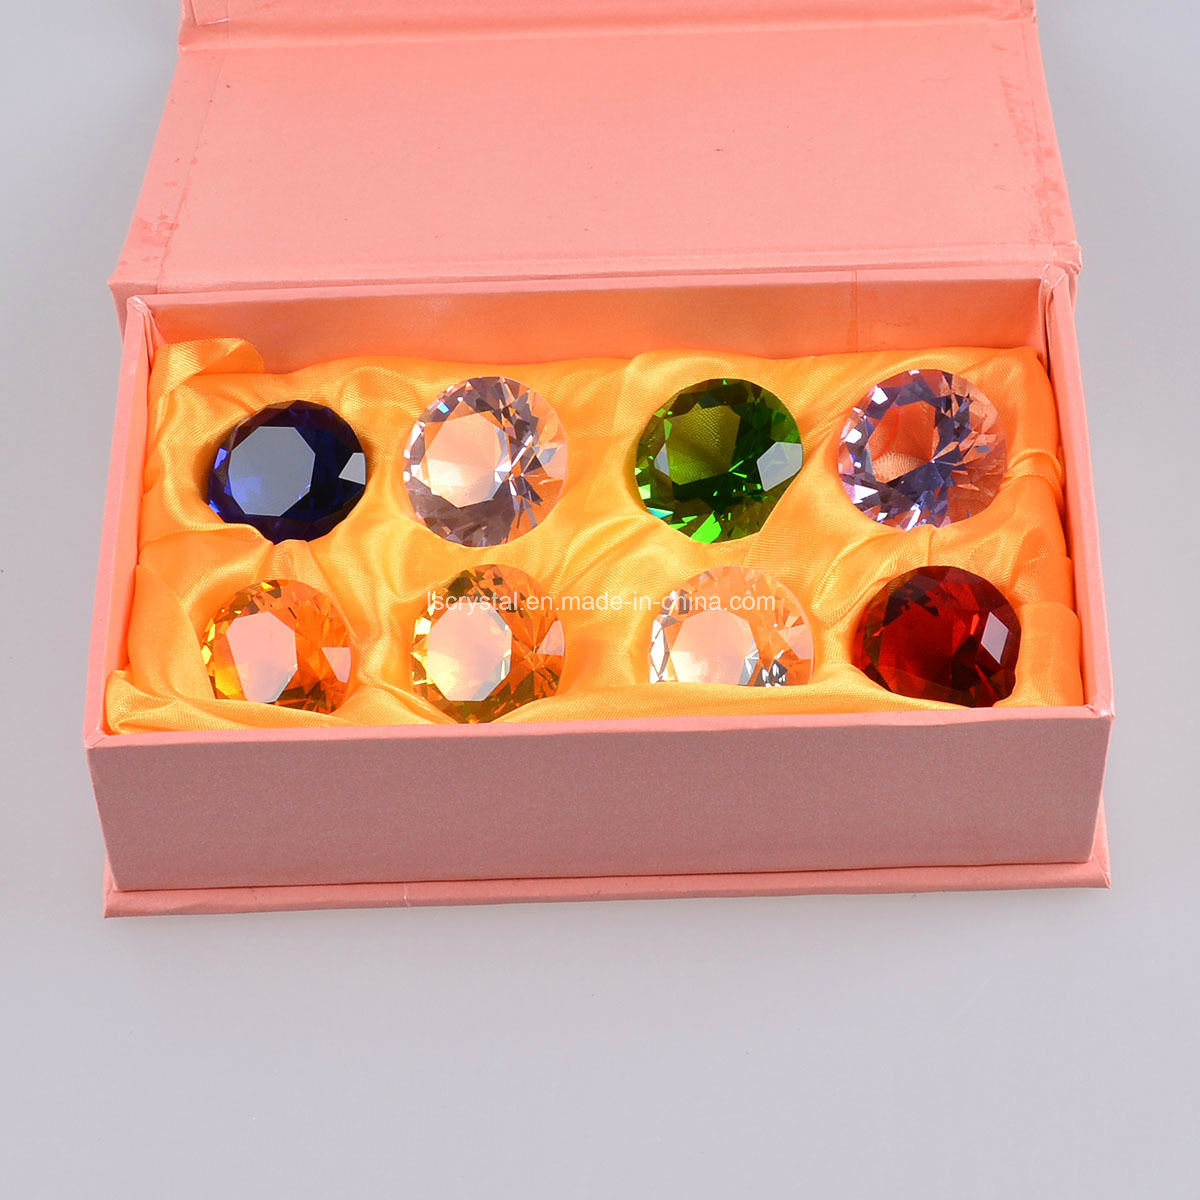 8PCS/Set 30mm Multi Color Crystal Diamond Paperweight, Birthday Gifts